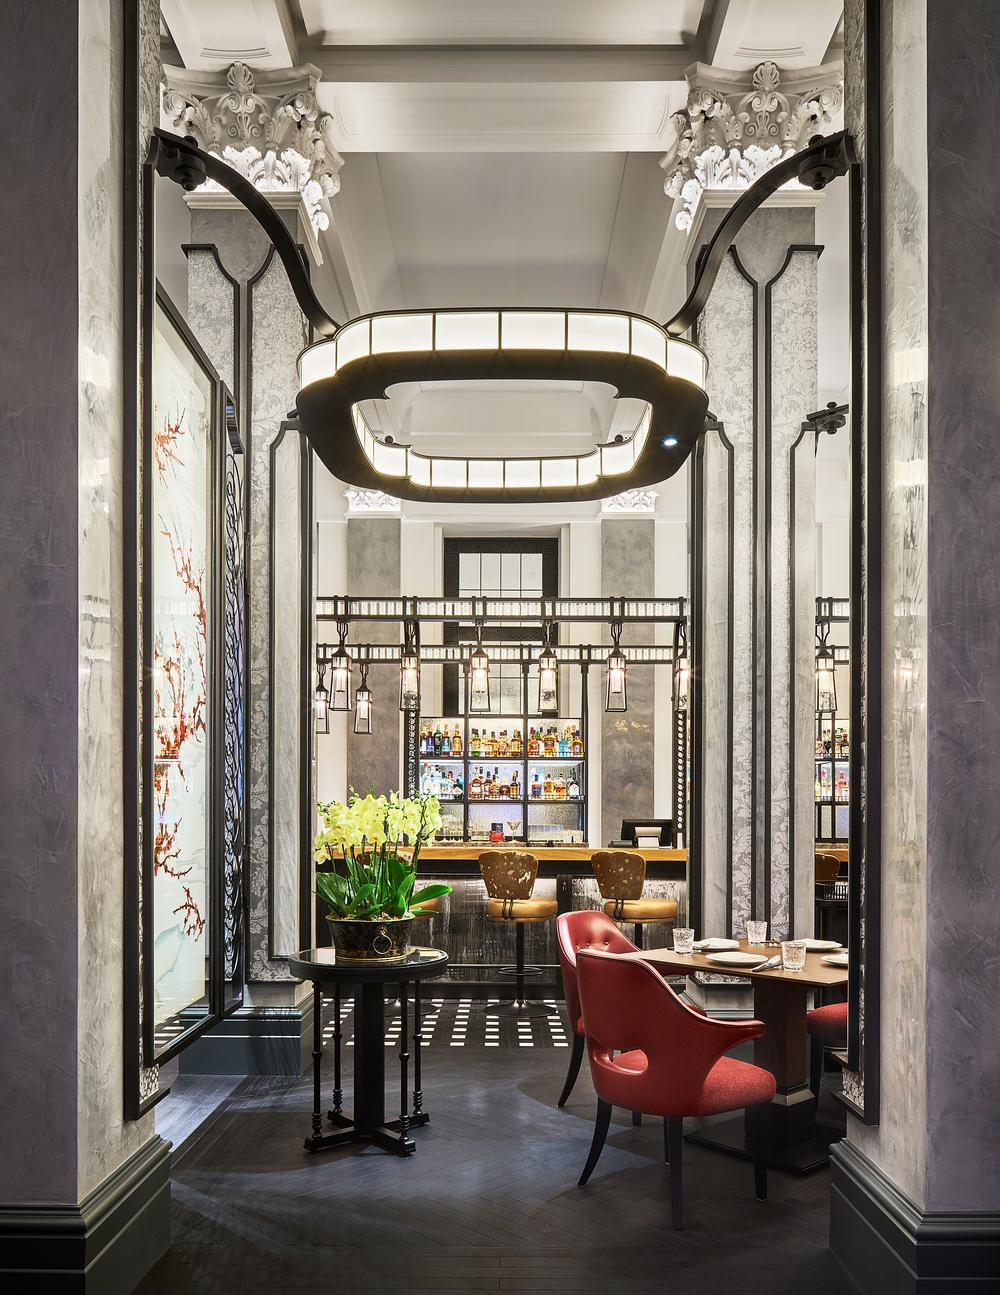 Mei Ume is one of two restaurants at the Four Seasons Hotel London. It opened last summer